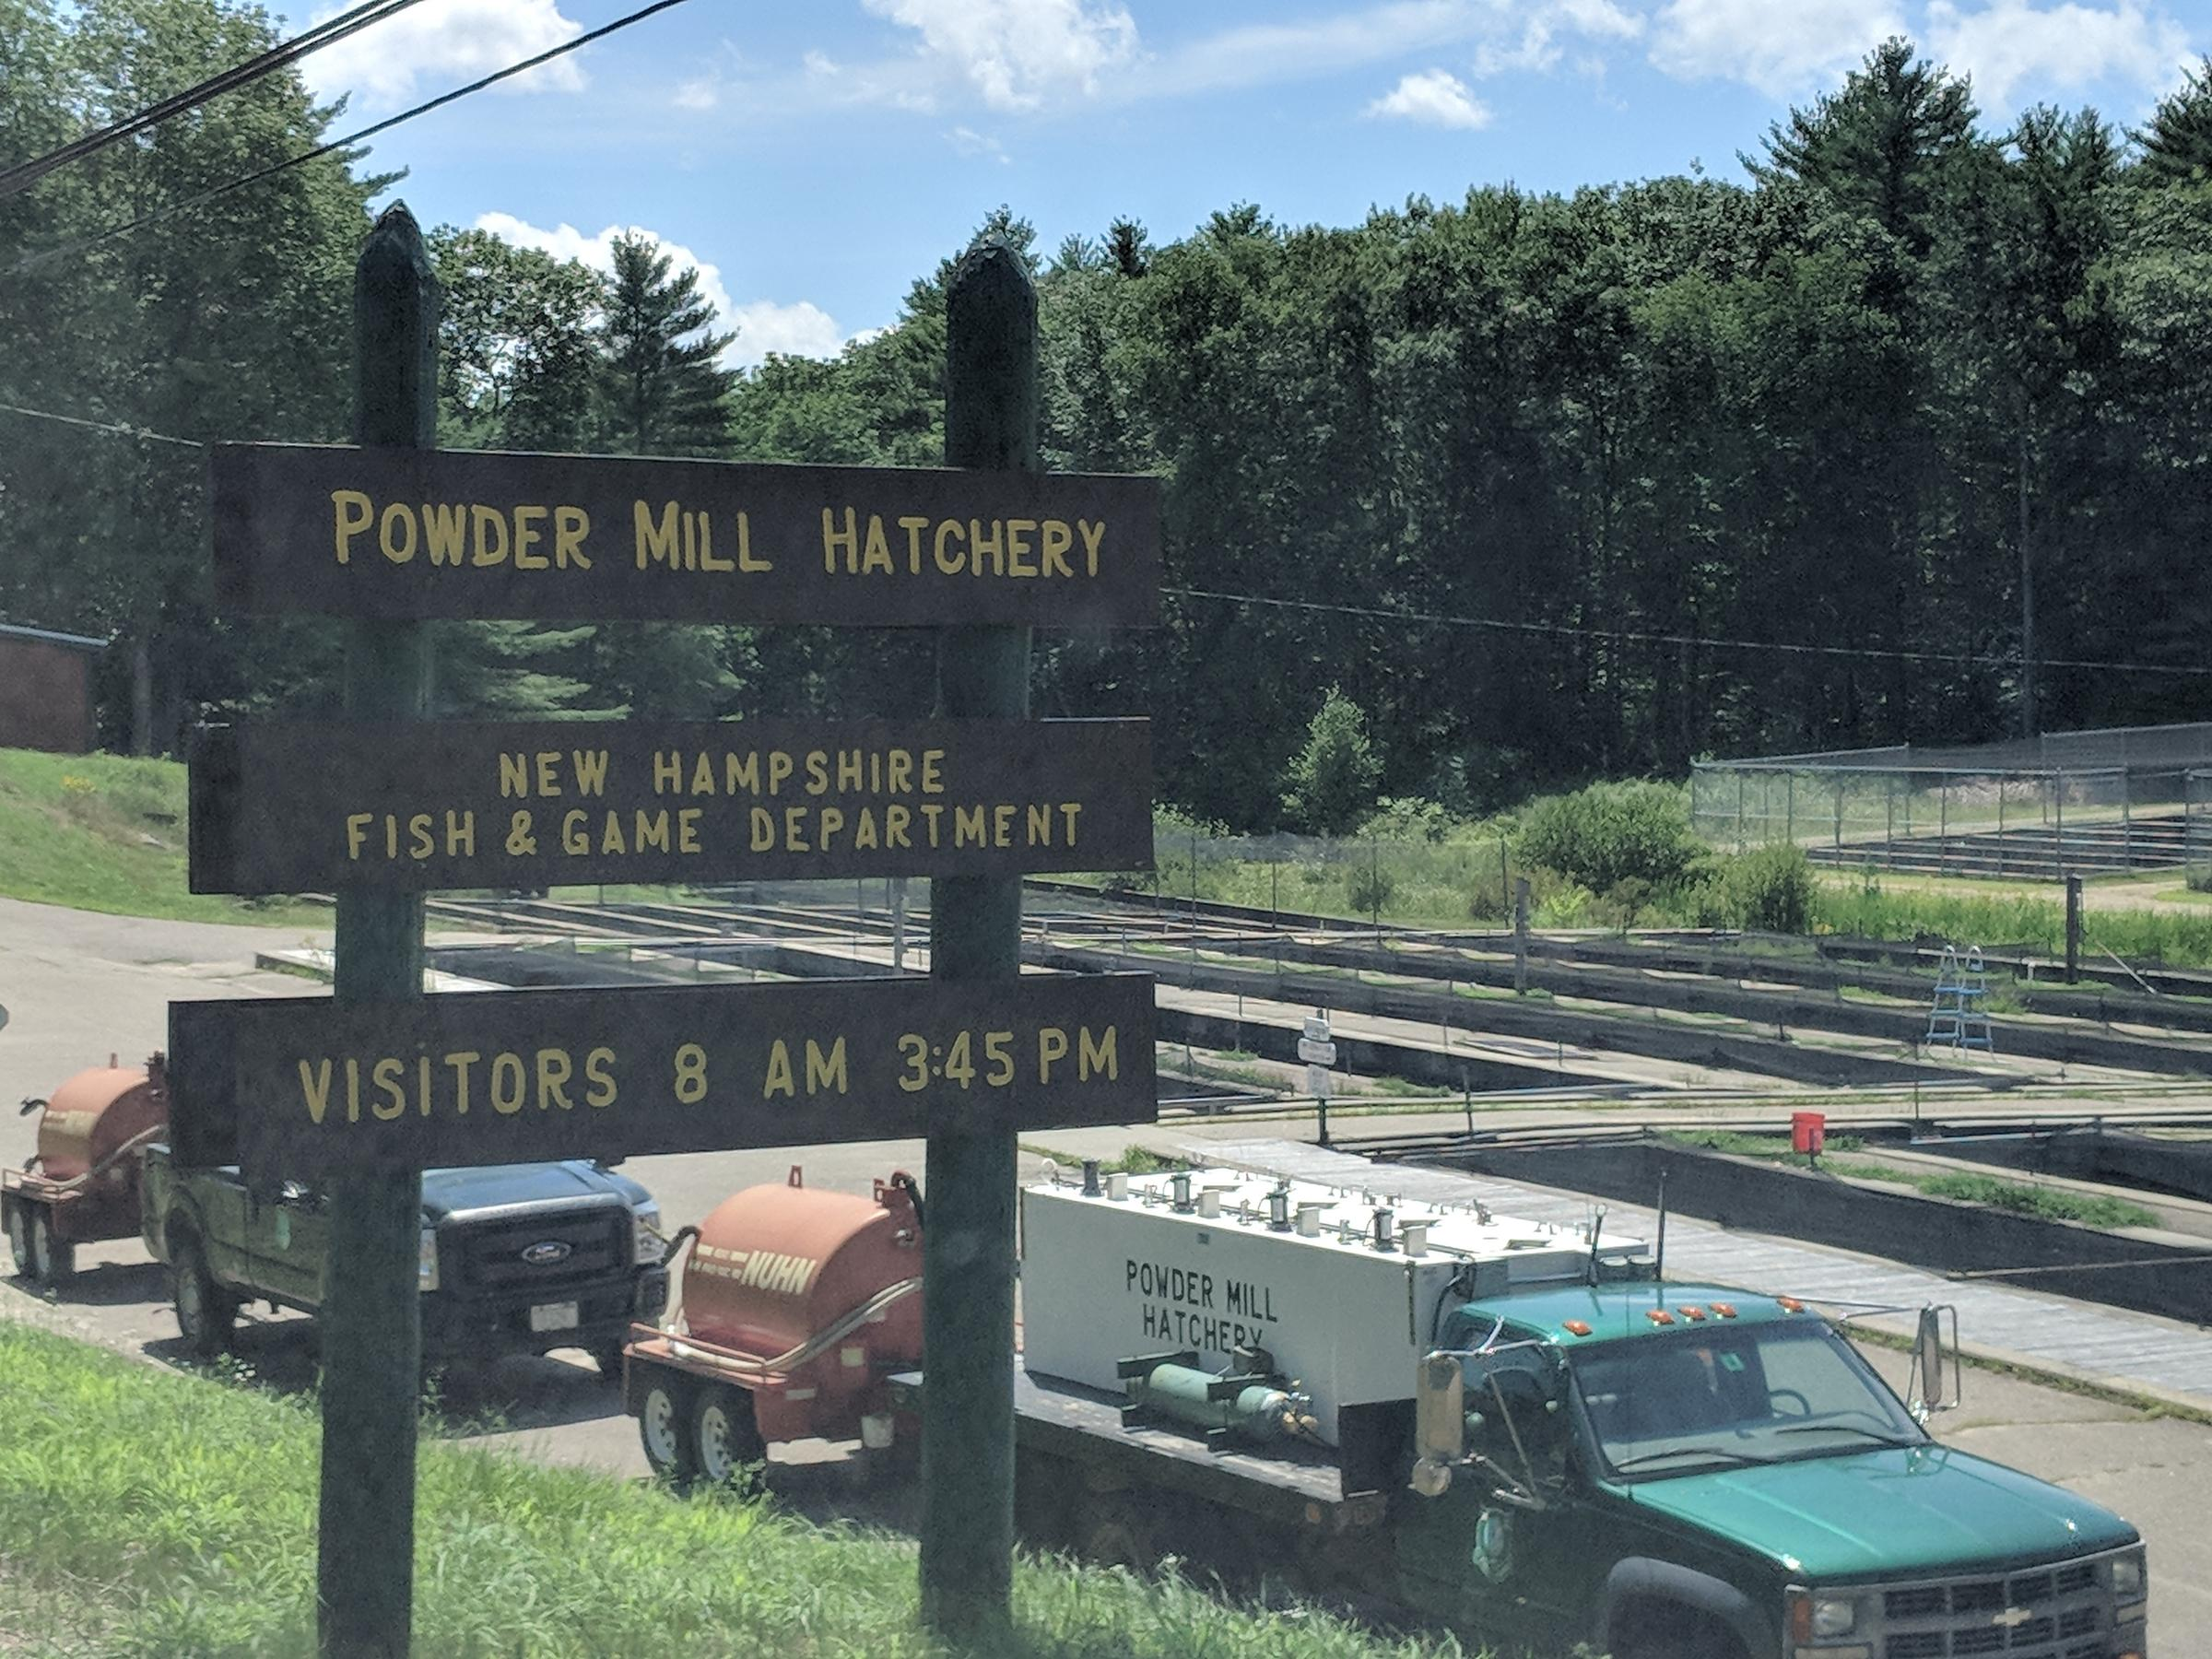 Advocates Sue N.H. Fish & Game Over Alleged Hatchery Pollution